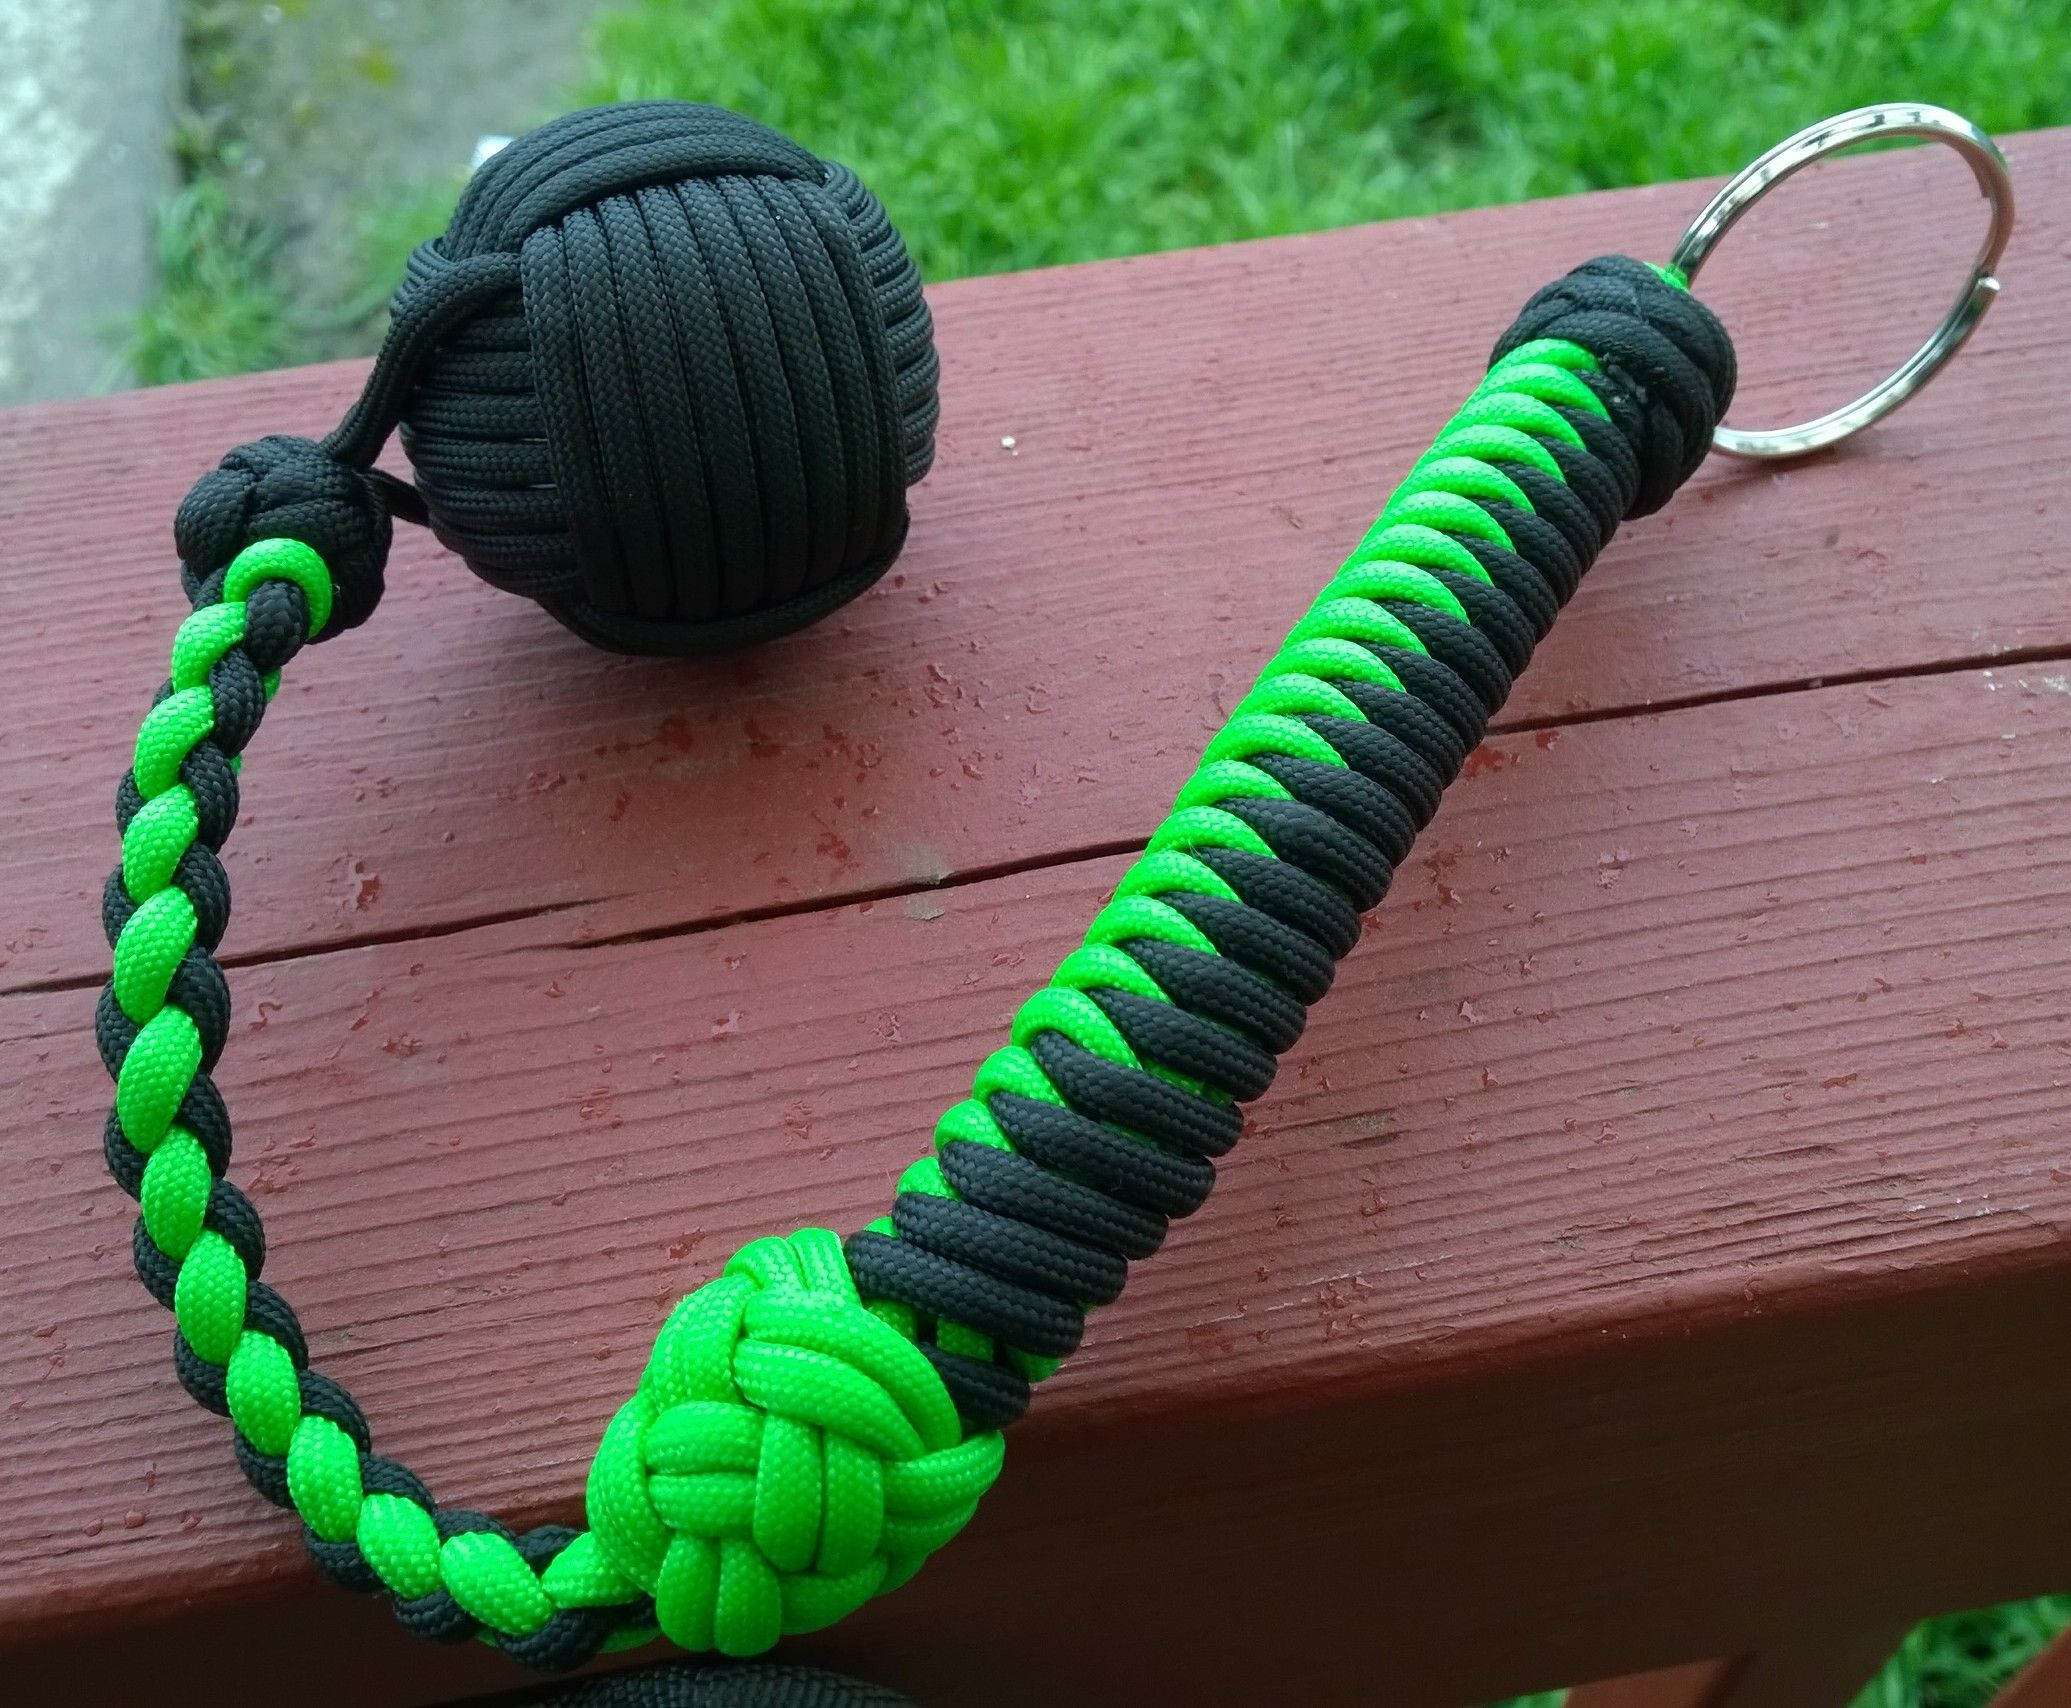 Zombie Monkey Fist Defense Keychain Monkey Fist Done Around Golf